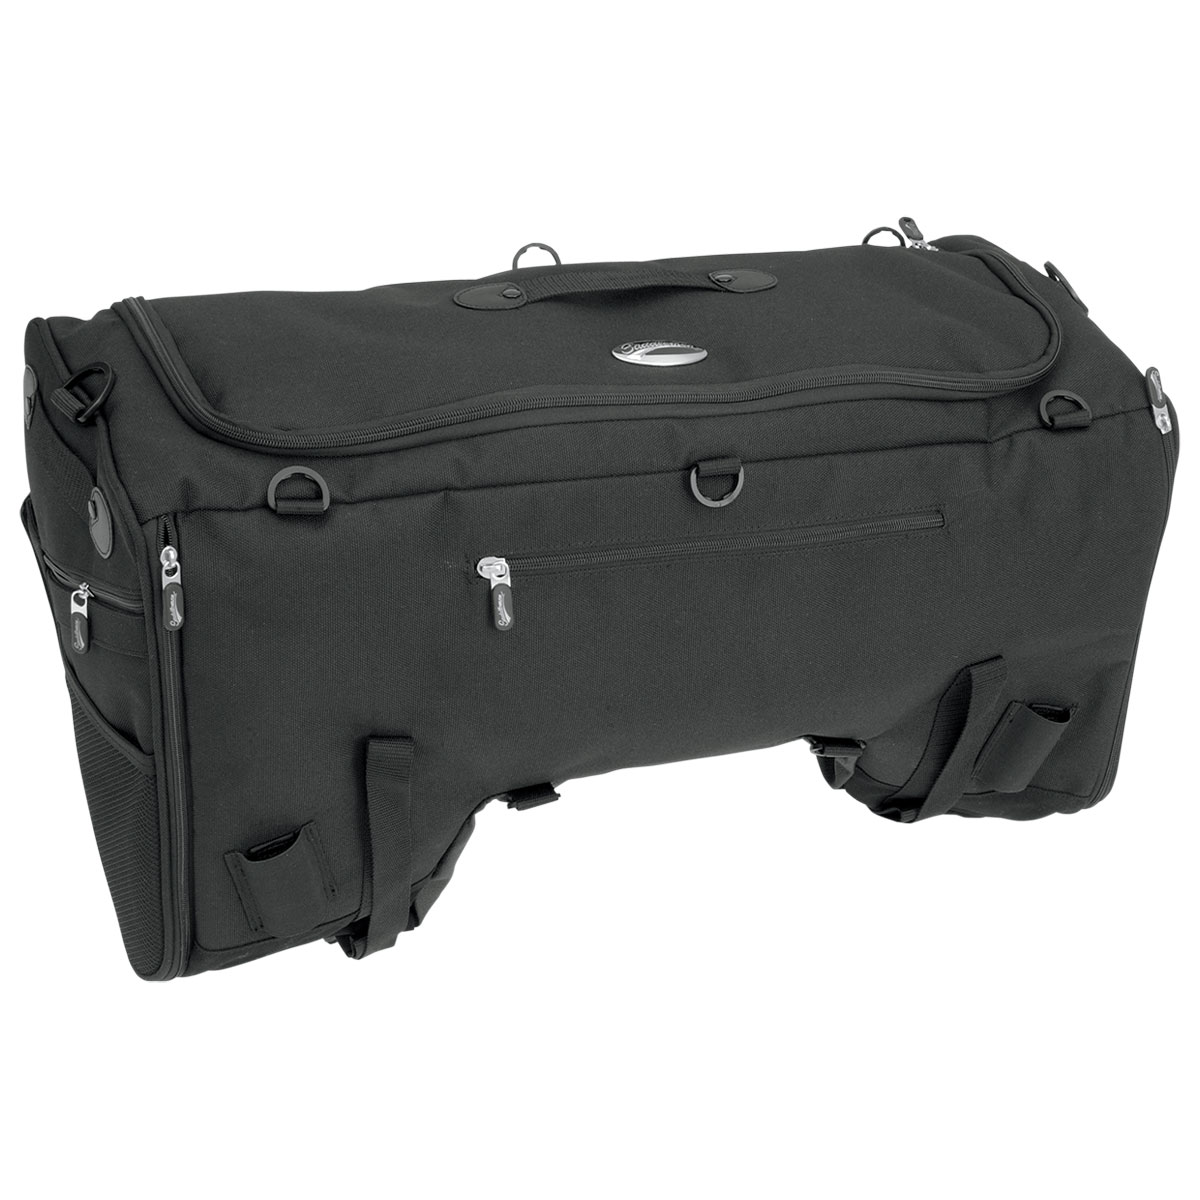 Saddlemen TS3200 Deluxe Sport Tail Bag